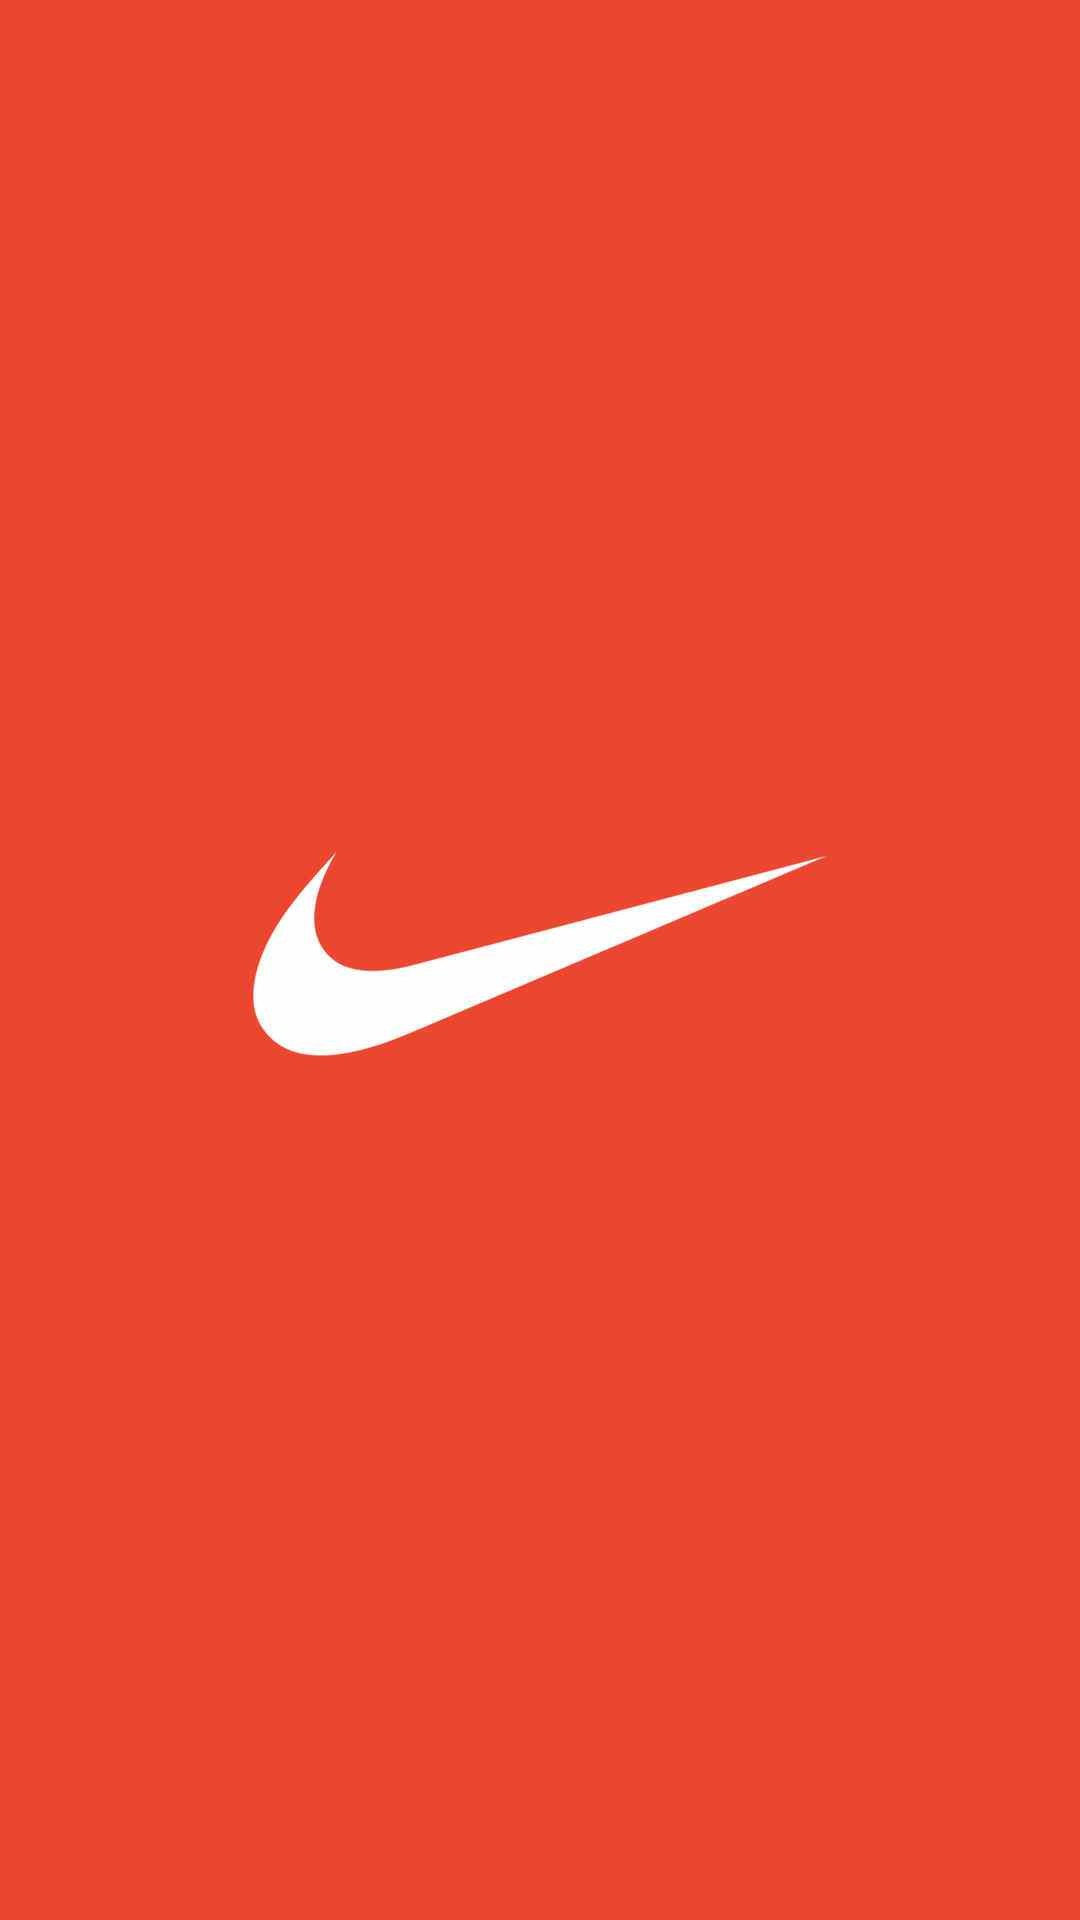 competitive price 28a8c 8395e 1920x1080 Nike 3D Wallpapers - Wallpaper Cave